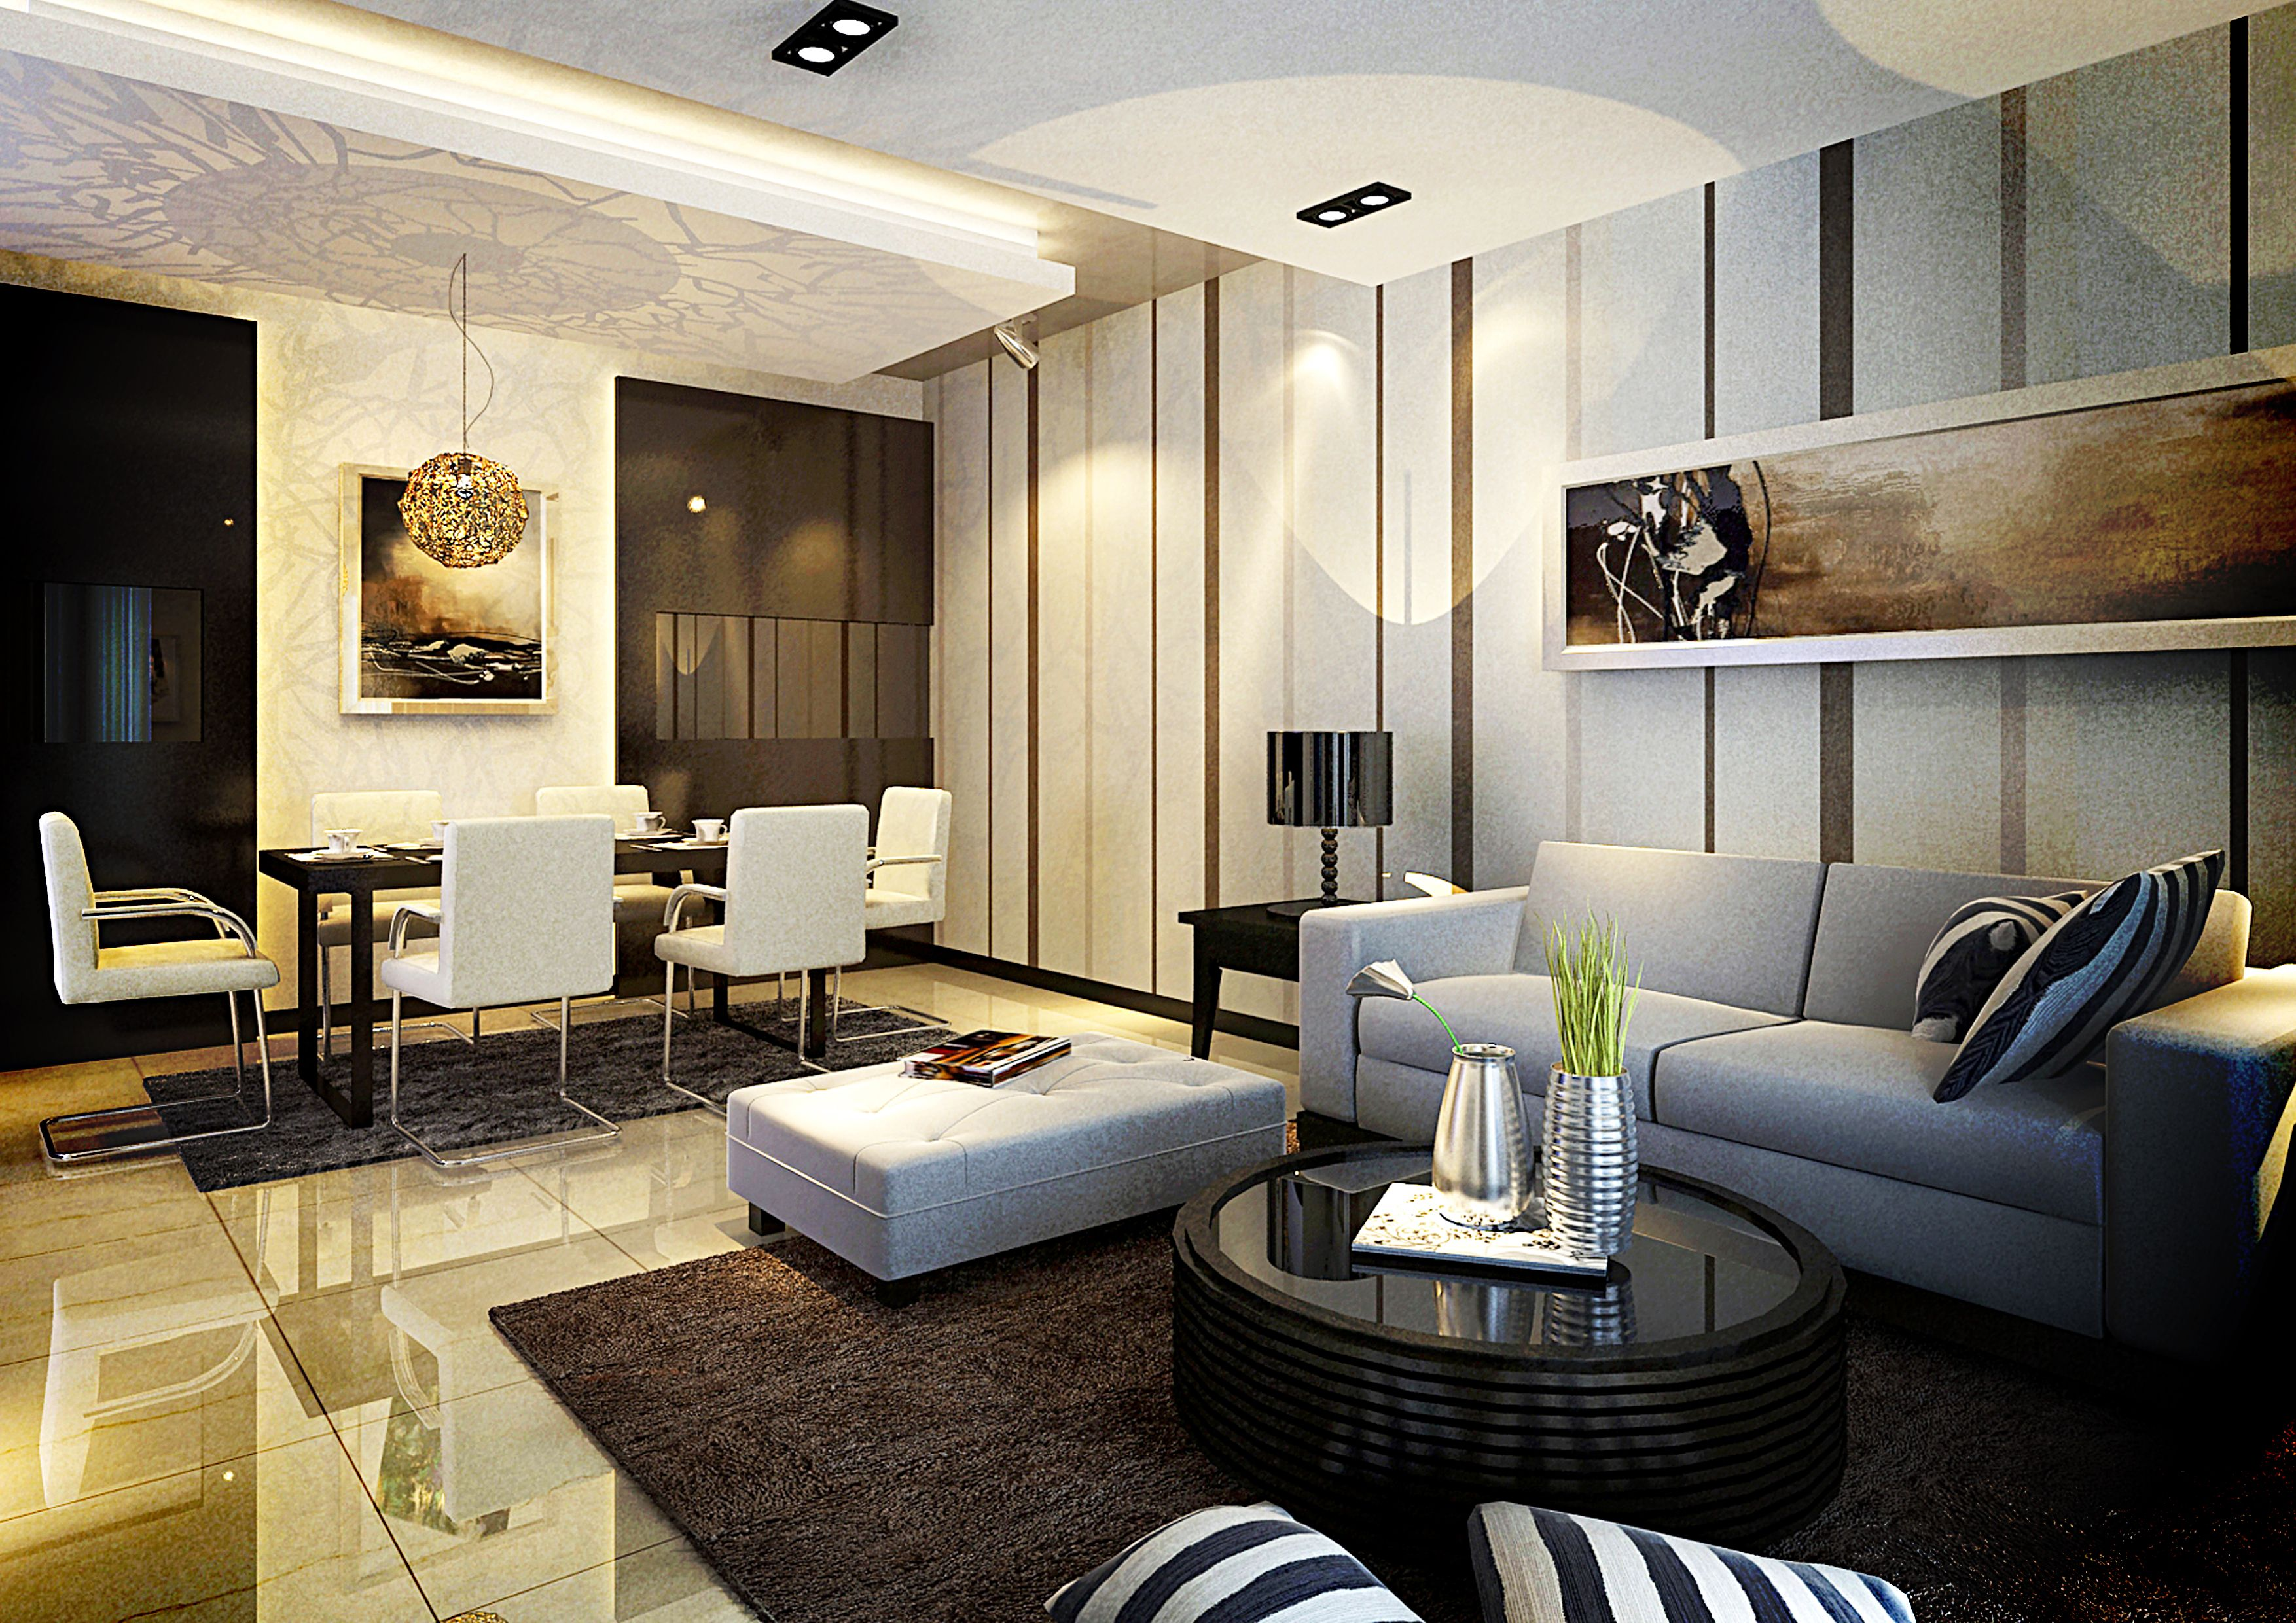 Elegant interior design in singapore interior design for Interior decorating ideas